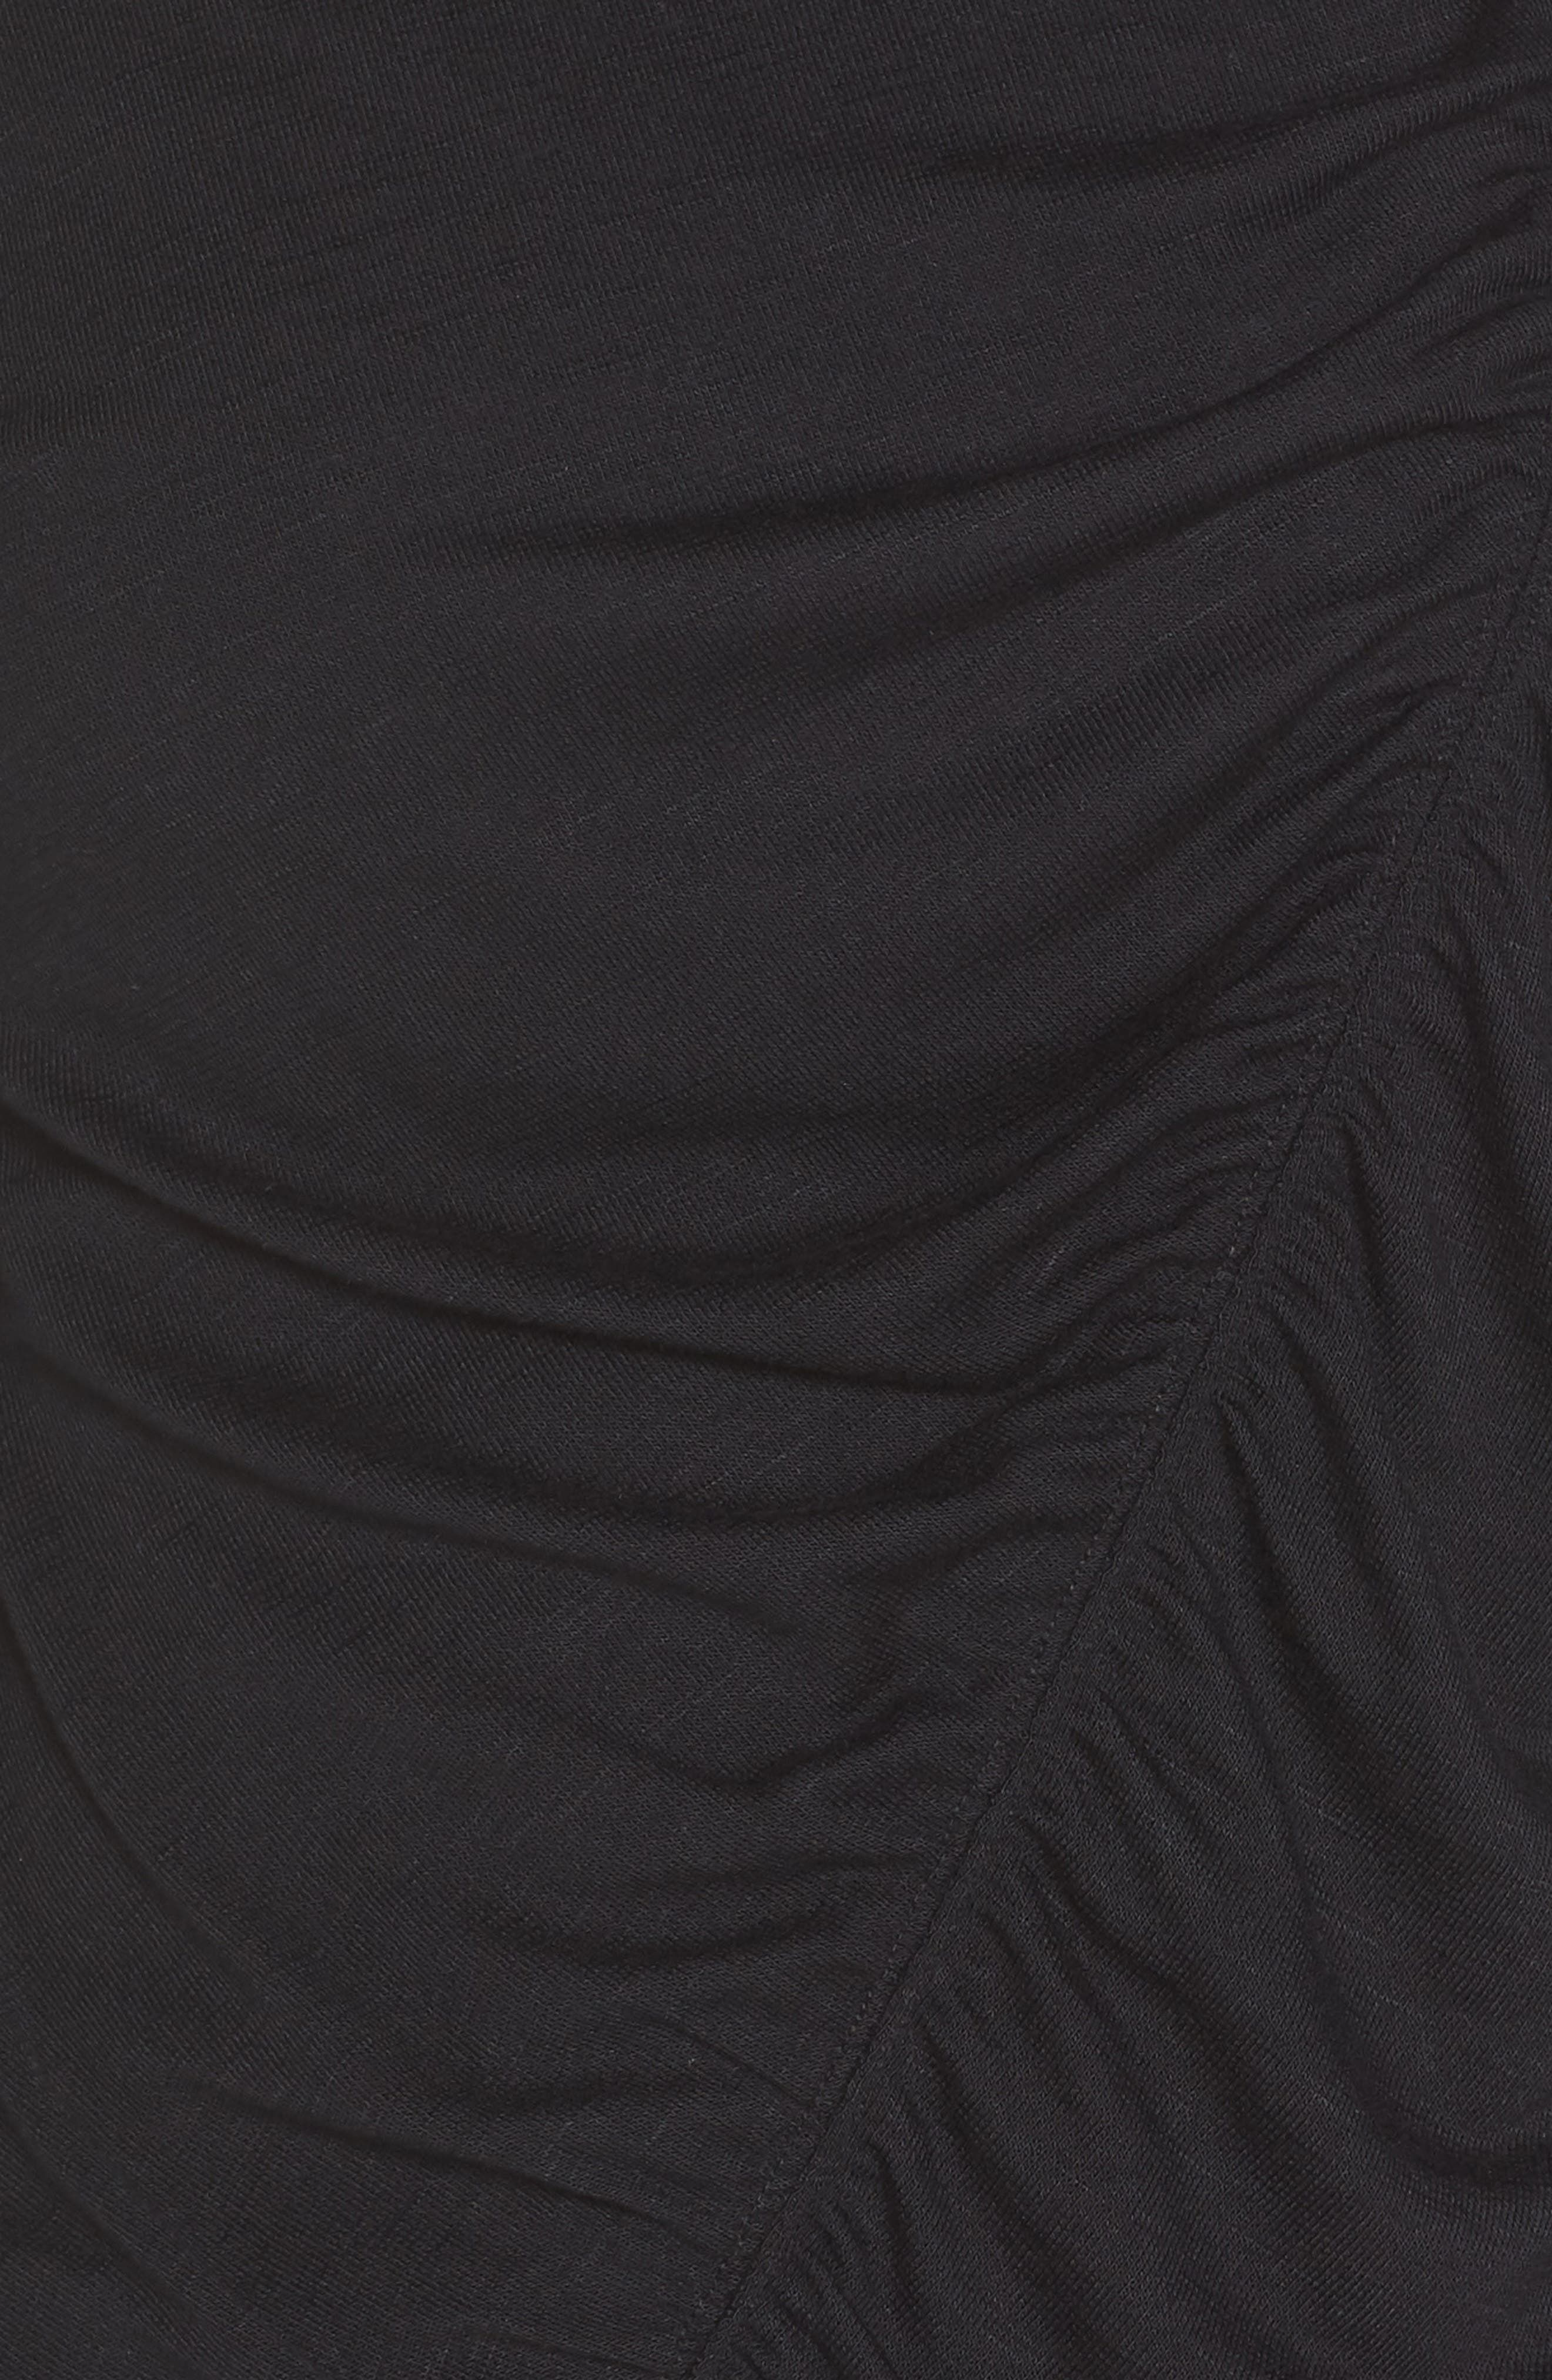 So Graceful Ruched Tee,                             Alternate thumbnail 6, color,                             BLACK